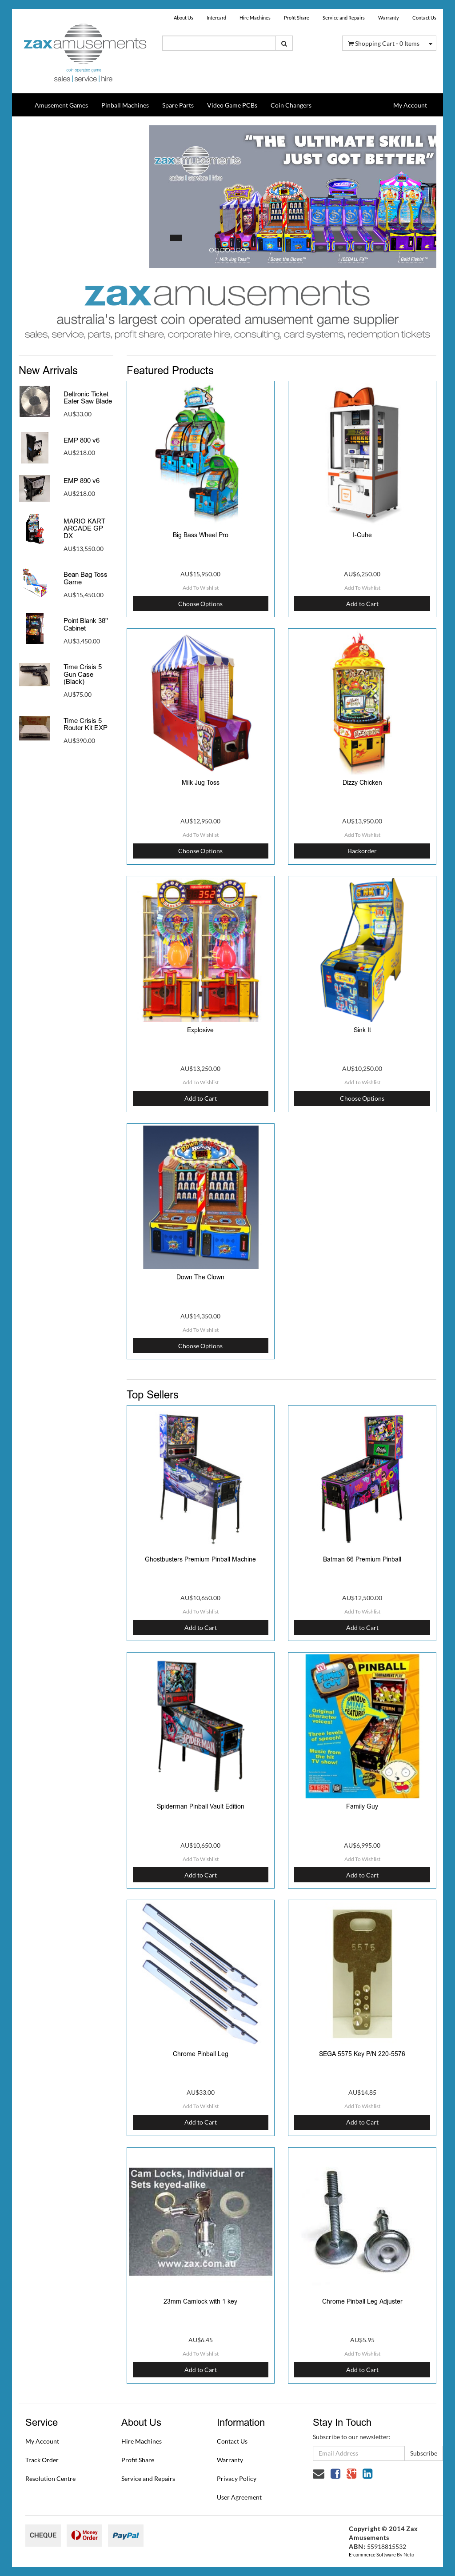 Zax Amusements Competitors, Revenue and Employees - Owler